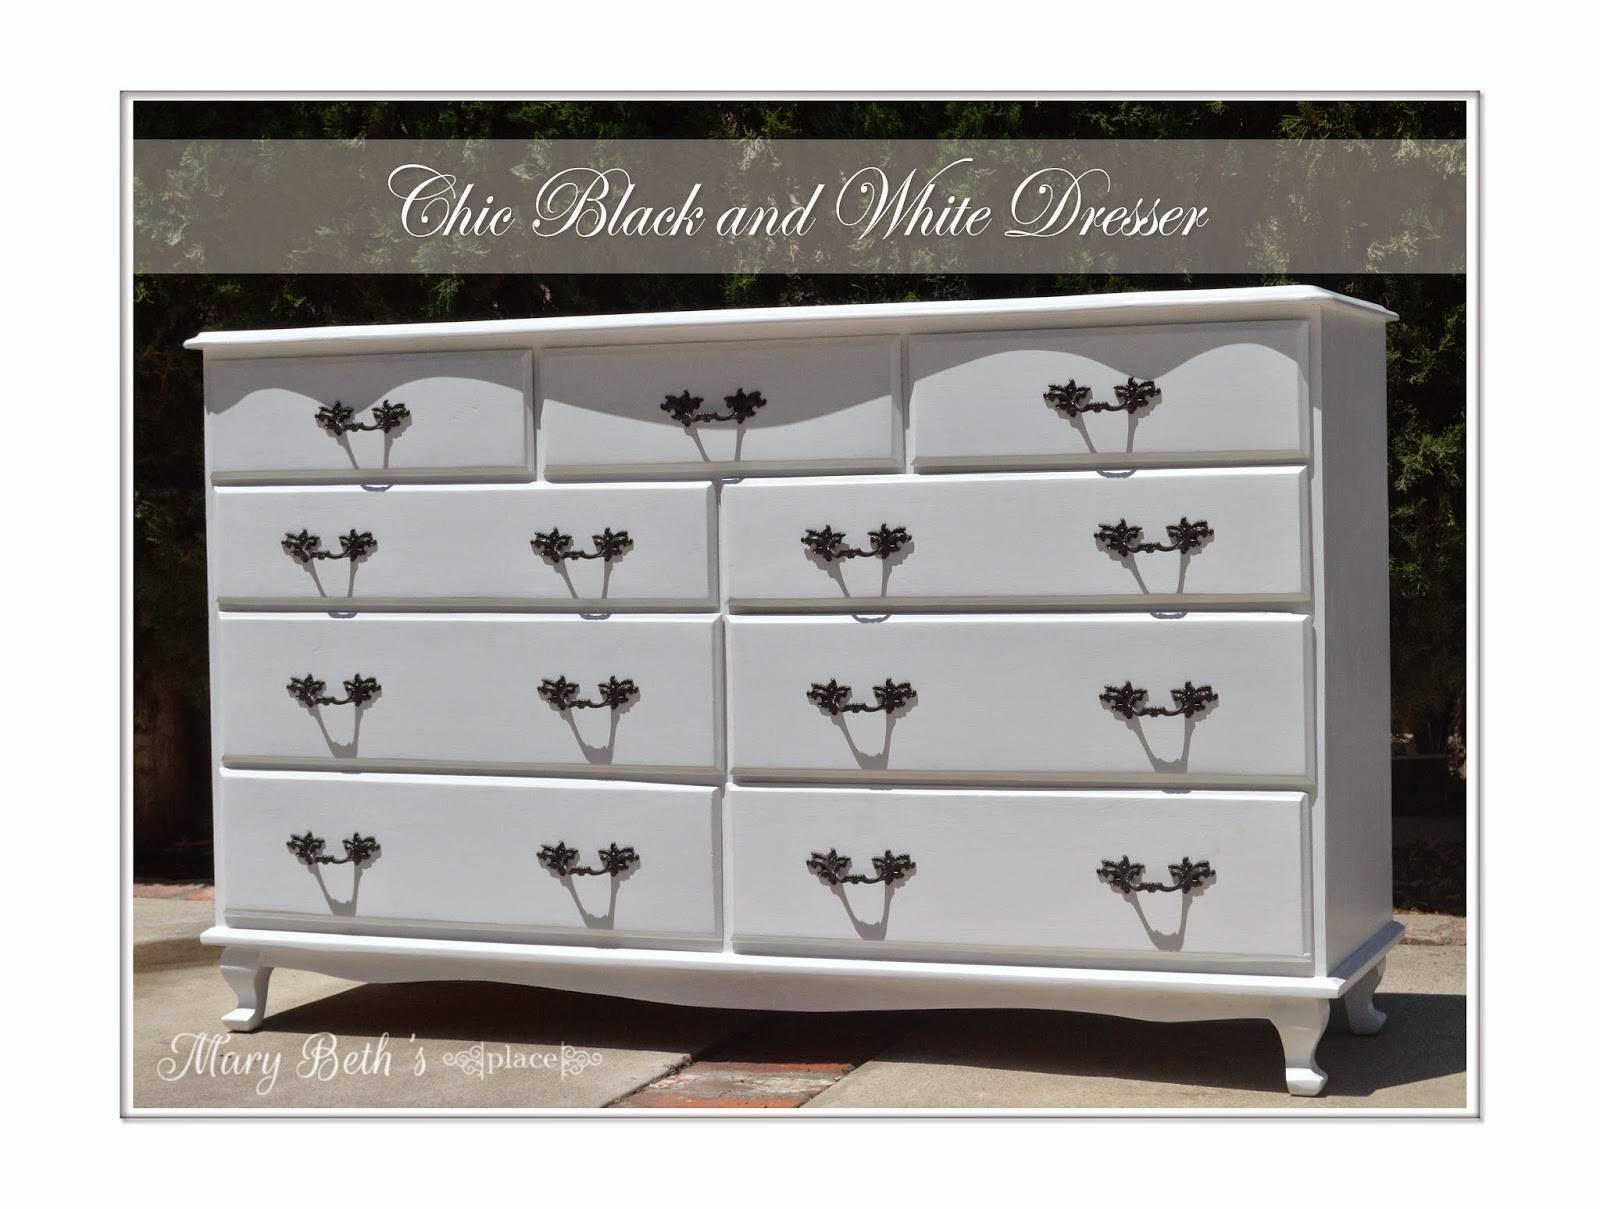 mary beth 39 s place chic black and white dresser. Black Bedroom Furniture Sets. Home Design Ideas